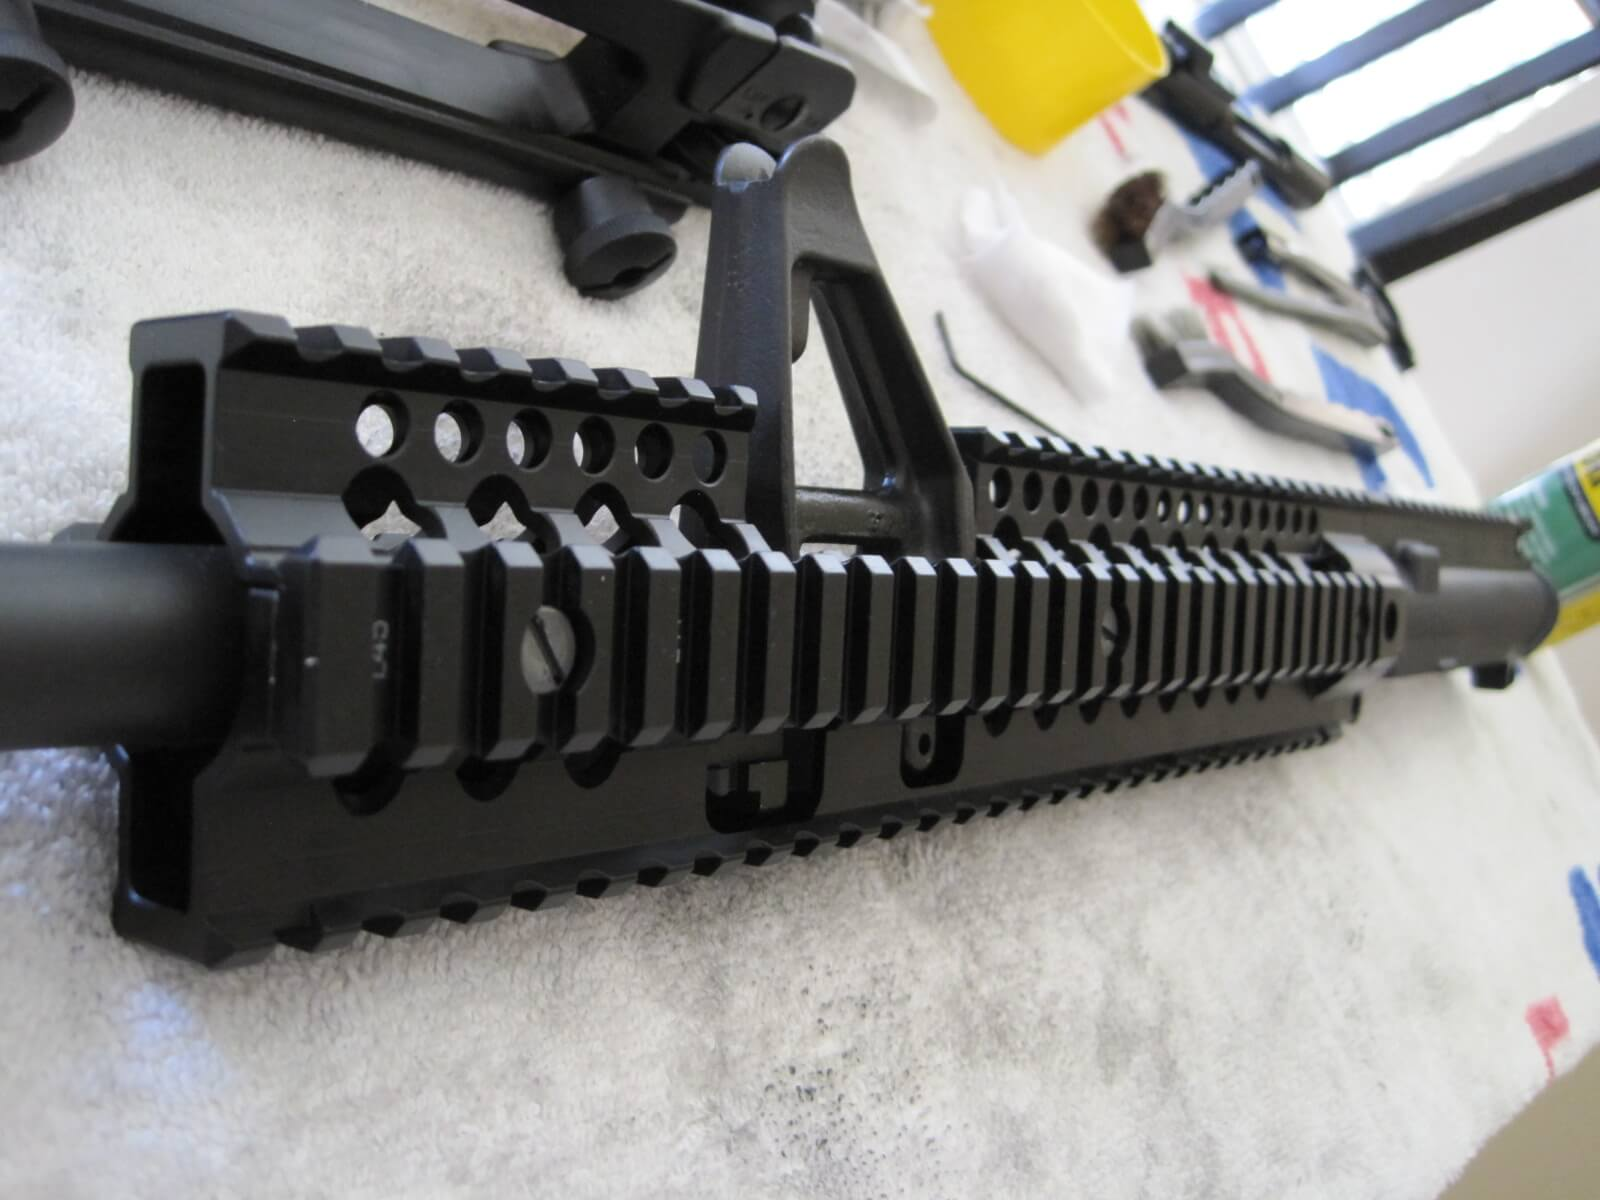 Check alignment on front of Daniel Defense Omega X 12.0 FSP Rail